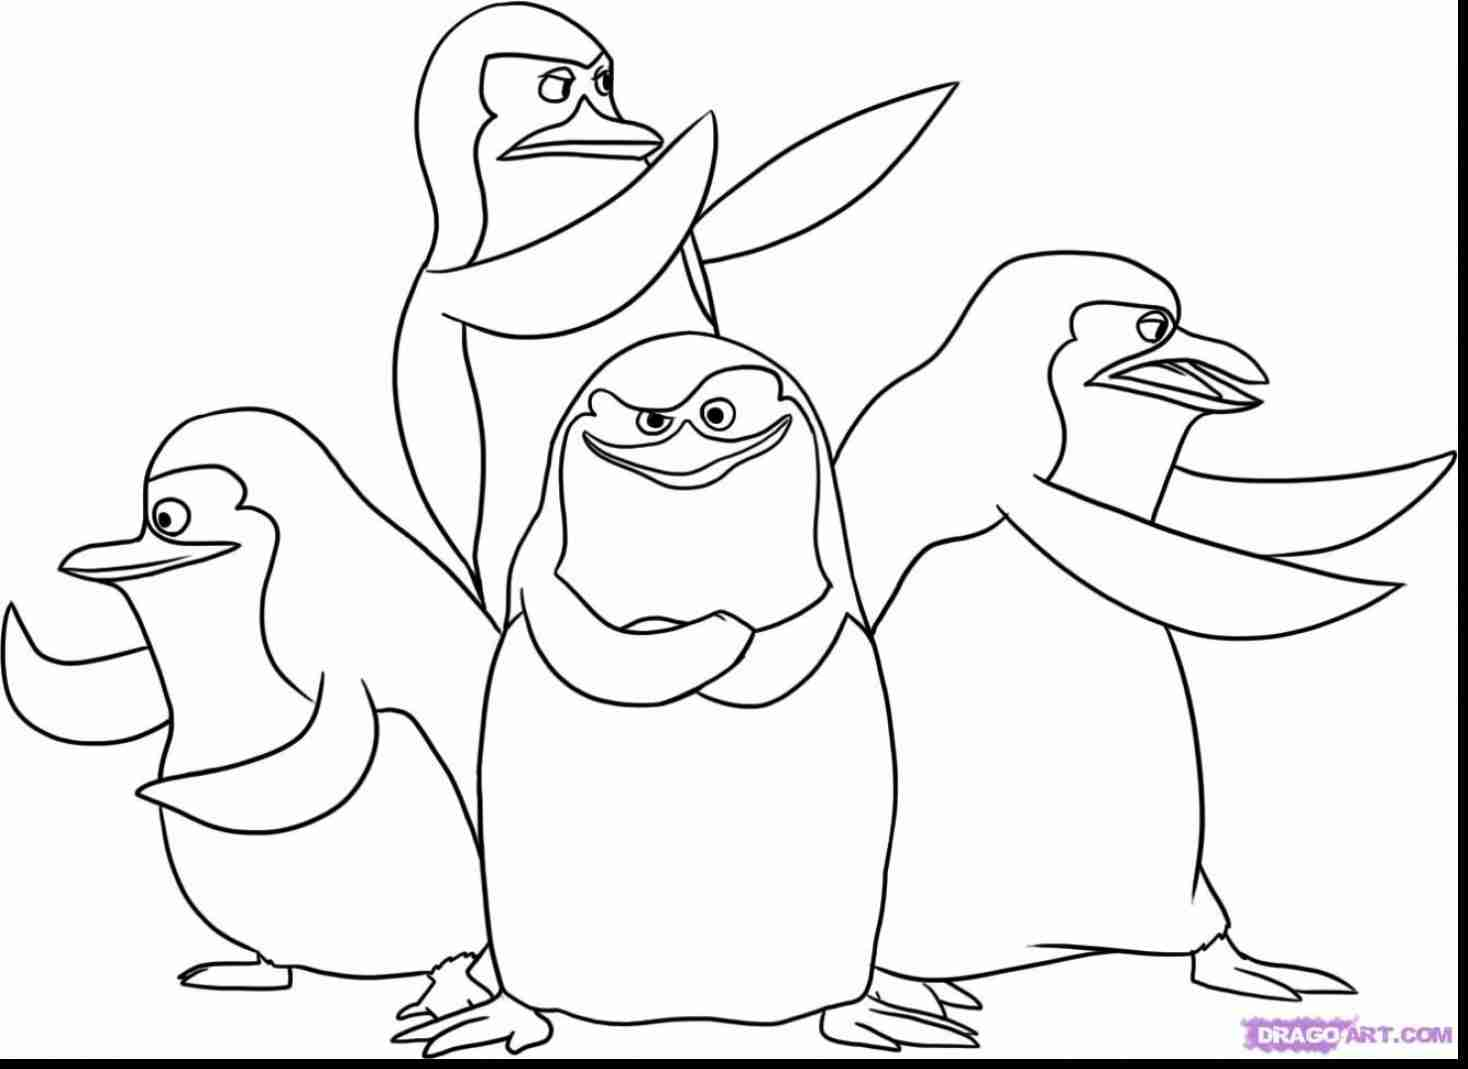 1468x1069 The Penguins Of Madagascar Coloring Pages Ebcs 57d3852d70e3 Fine